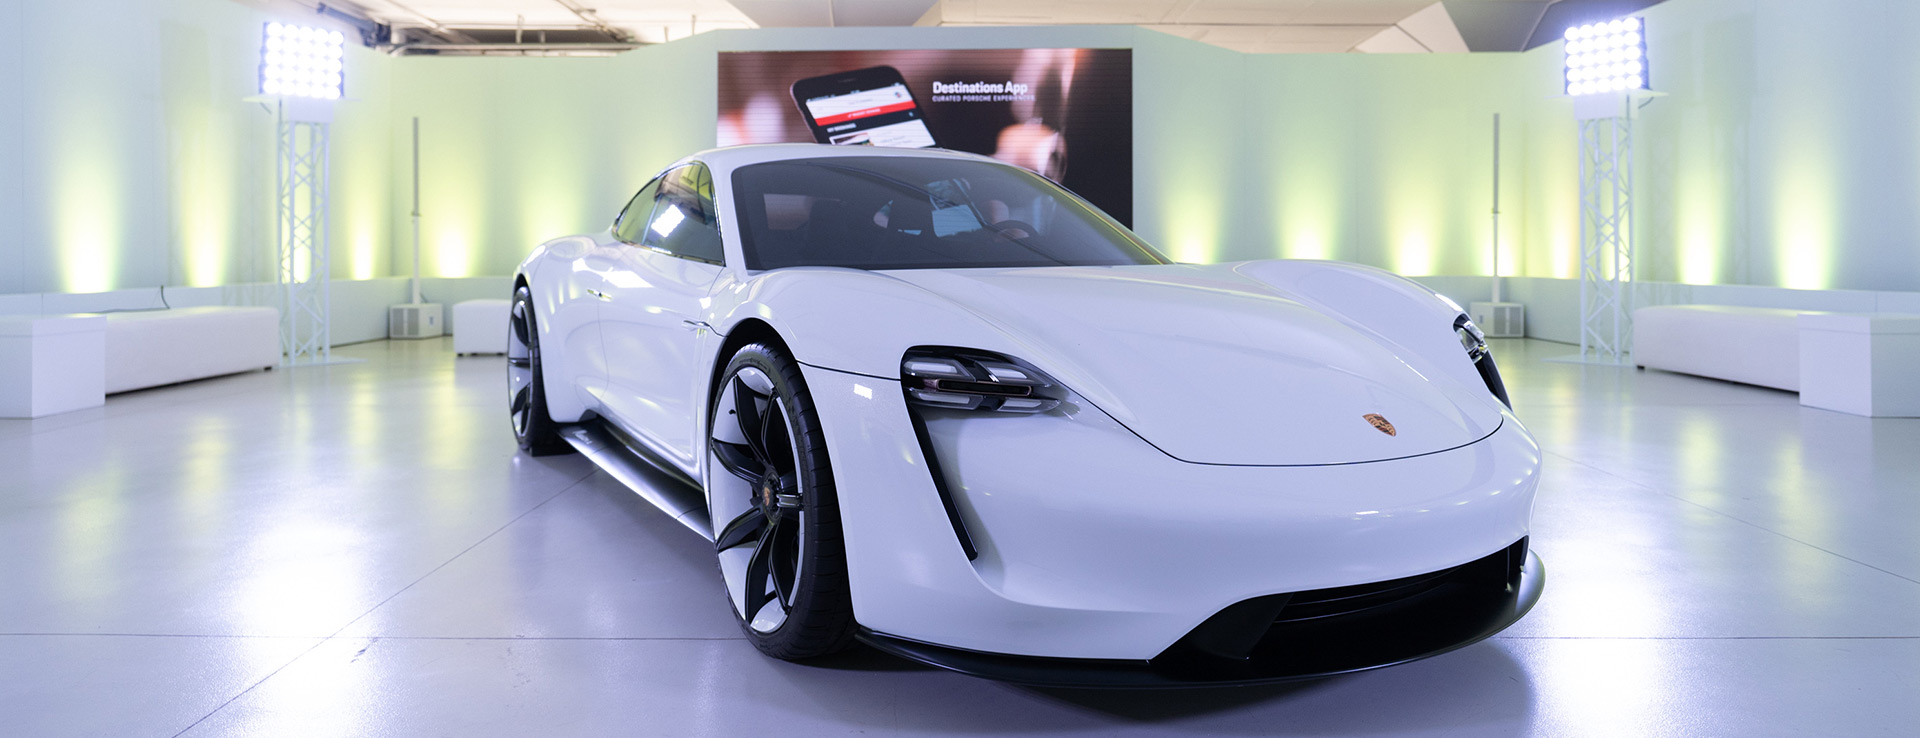 Porsche - Exclusive viewing of the Mission E concept car in South Africa.